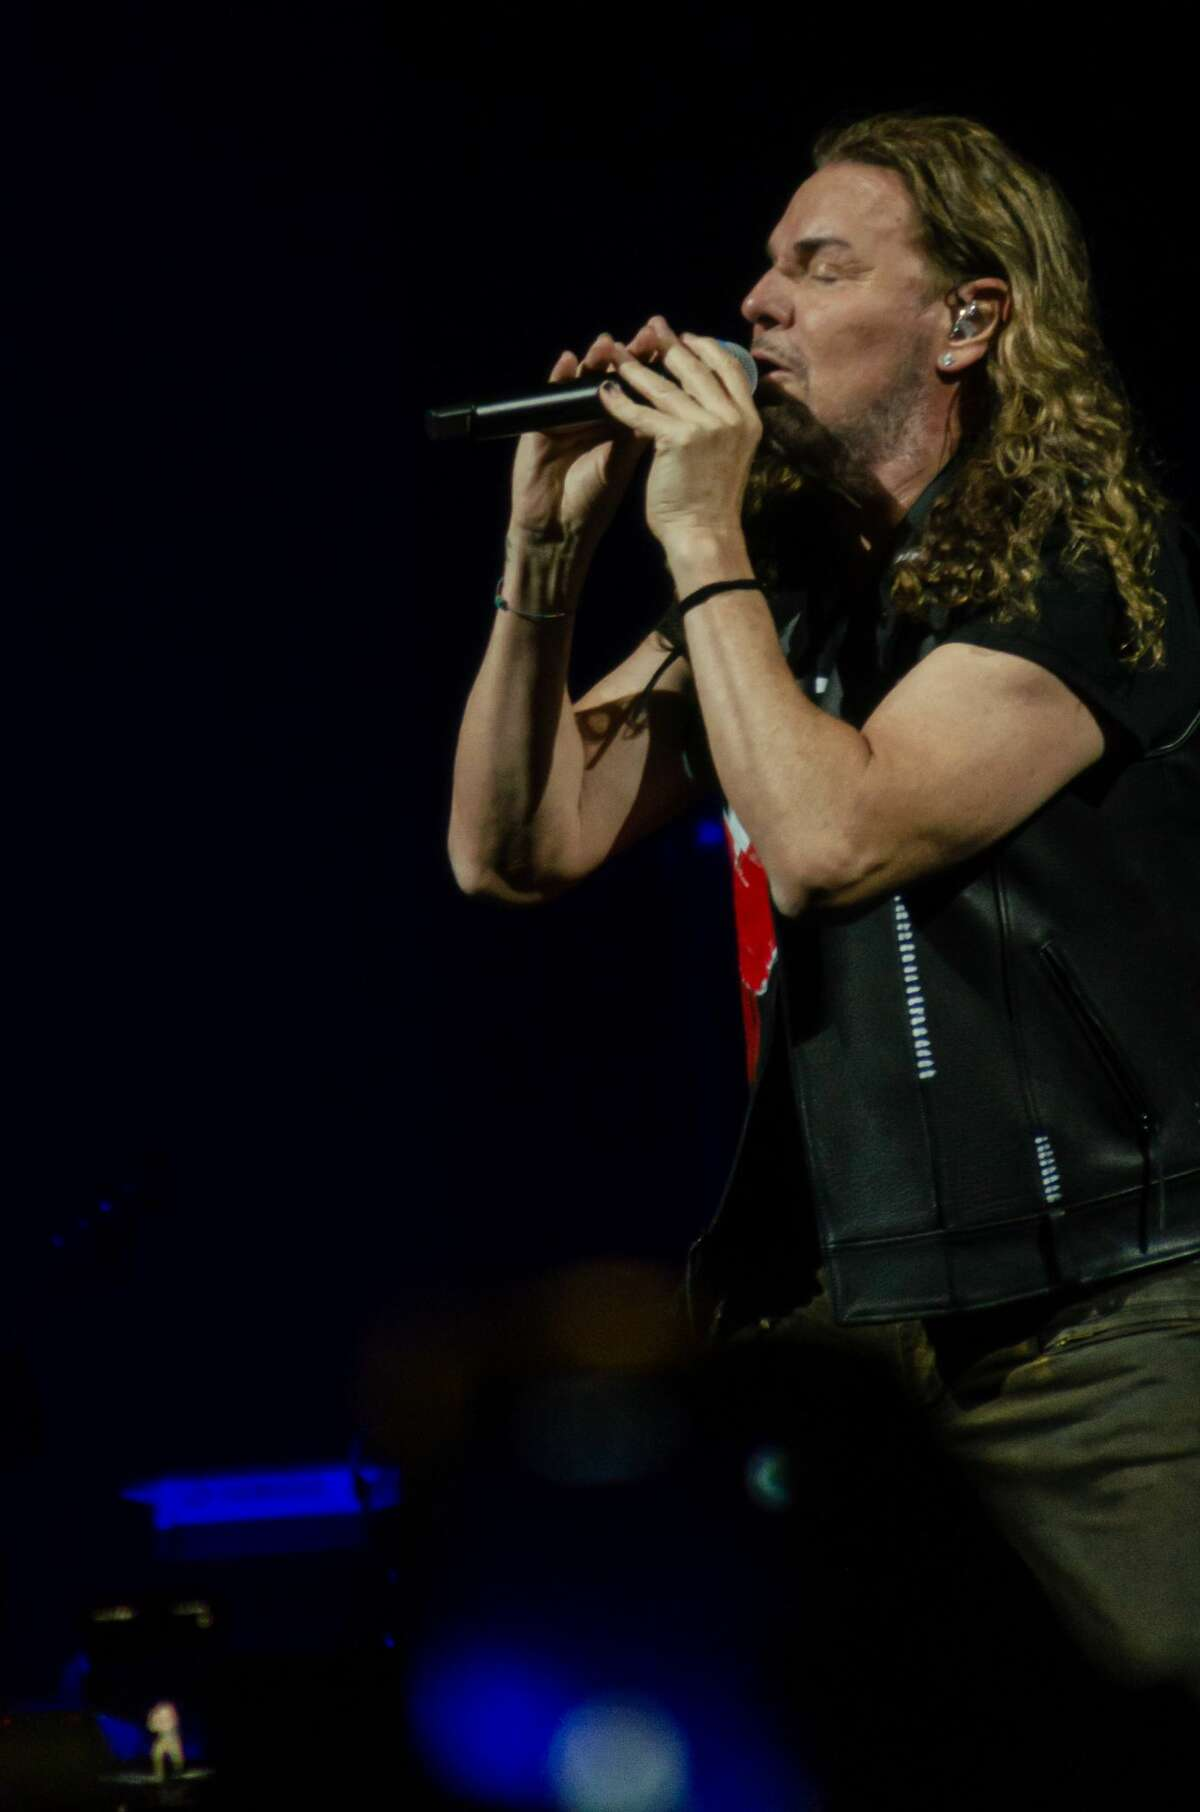 Mana kicks off their Rayando el Sol Tour in Laredo and entertains the audience with all their greatest hits at Sames Auto Arena, Saturday, August 31, 2019.